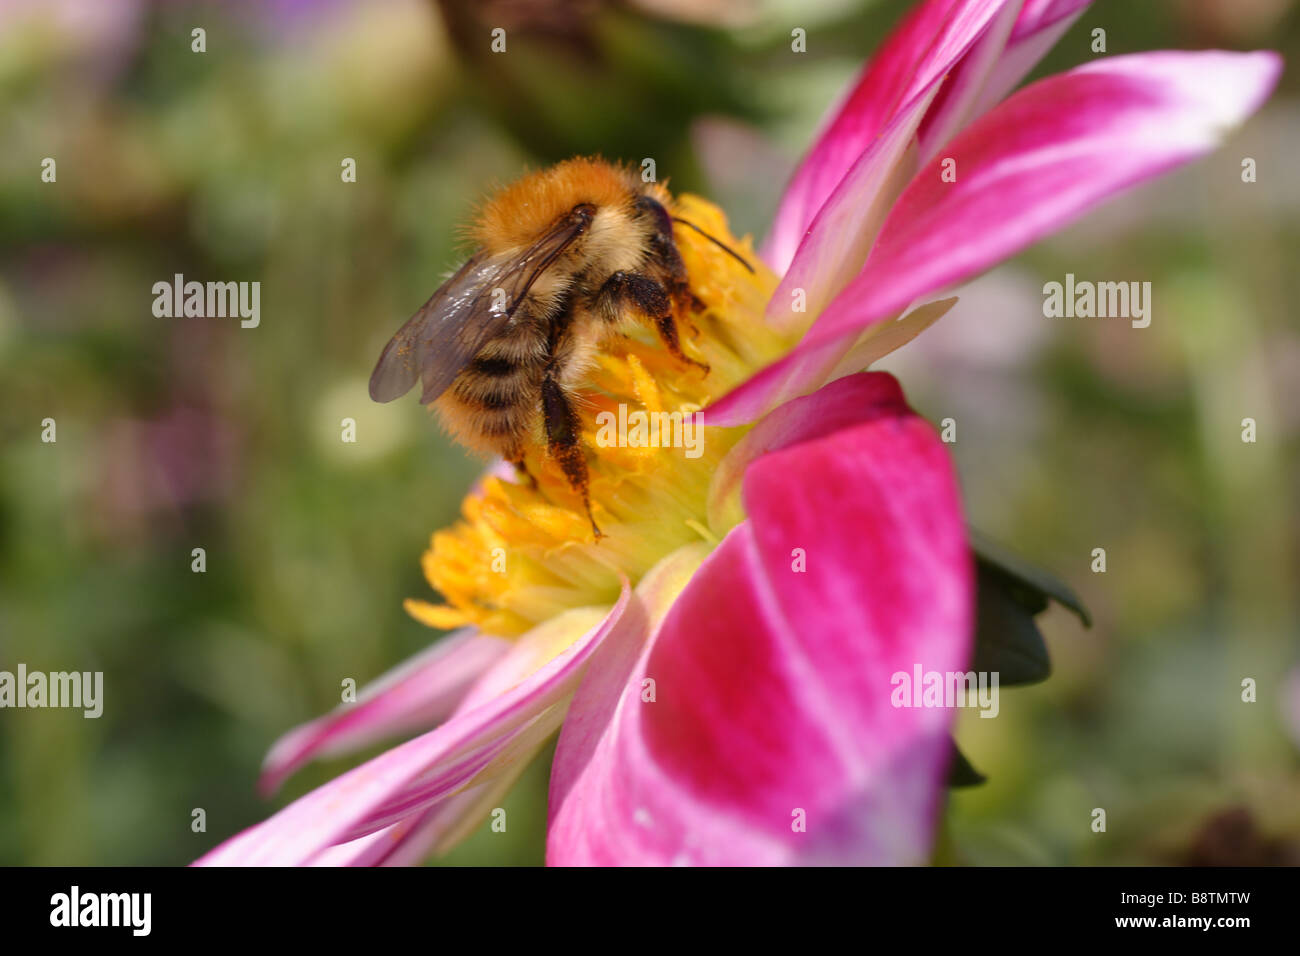 Flower and Bee - Stock Image